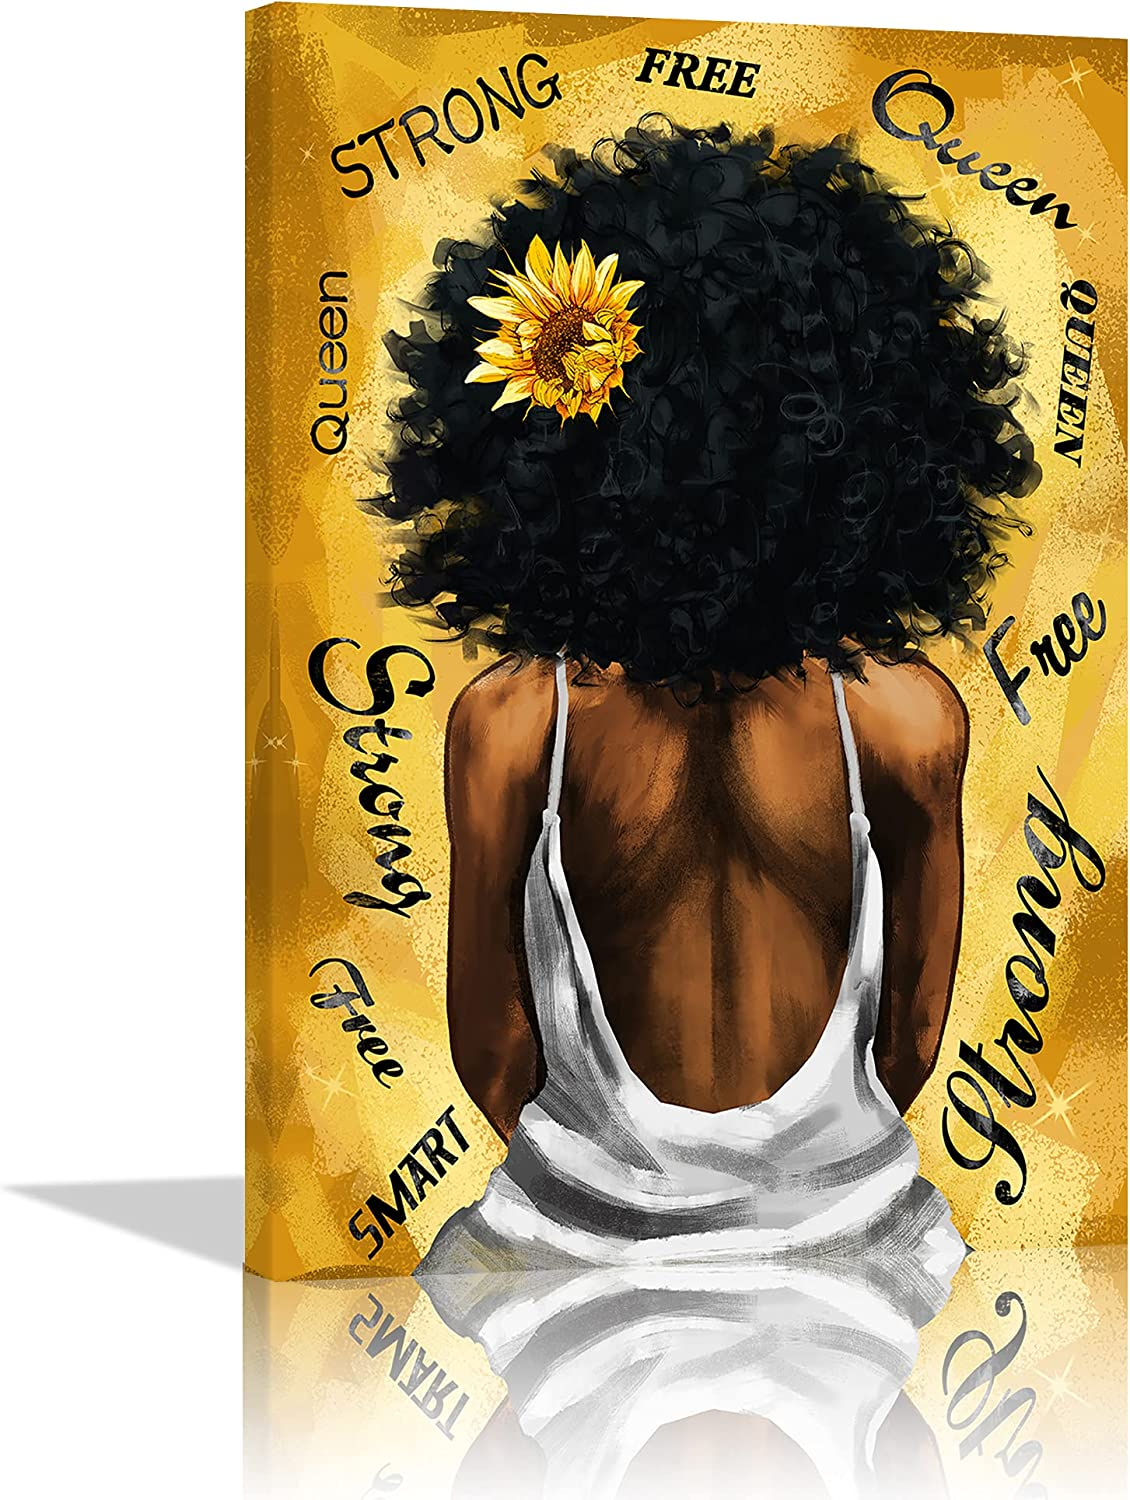 African American Wall Art Sunflower Black Woman Canvas Print Yellow Black Inspirational Painting Abstract Black Woman Art for Bedroom Bathroom Living Room Wall Decor Framed Ready to Hang - 12